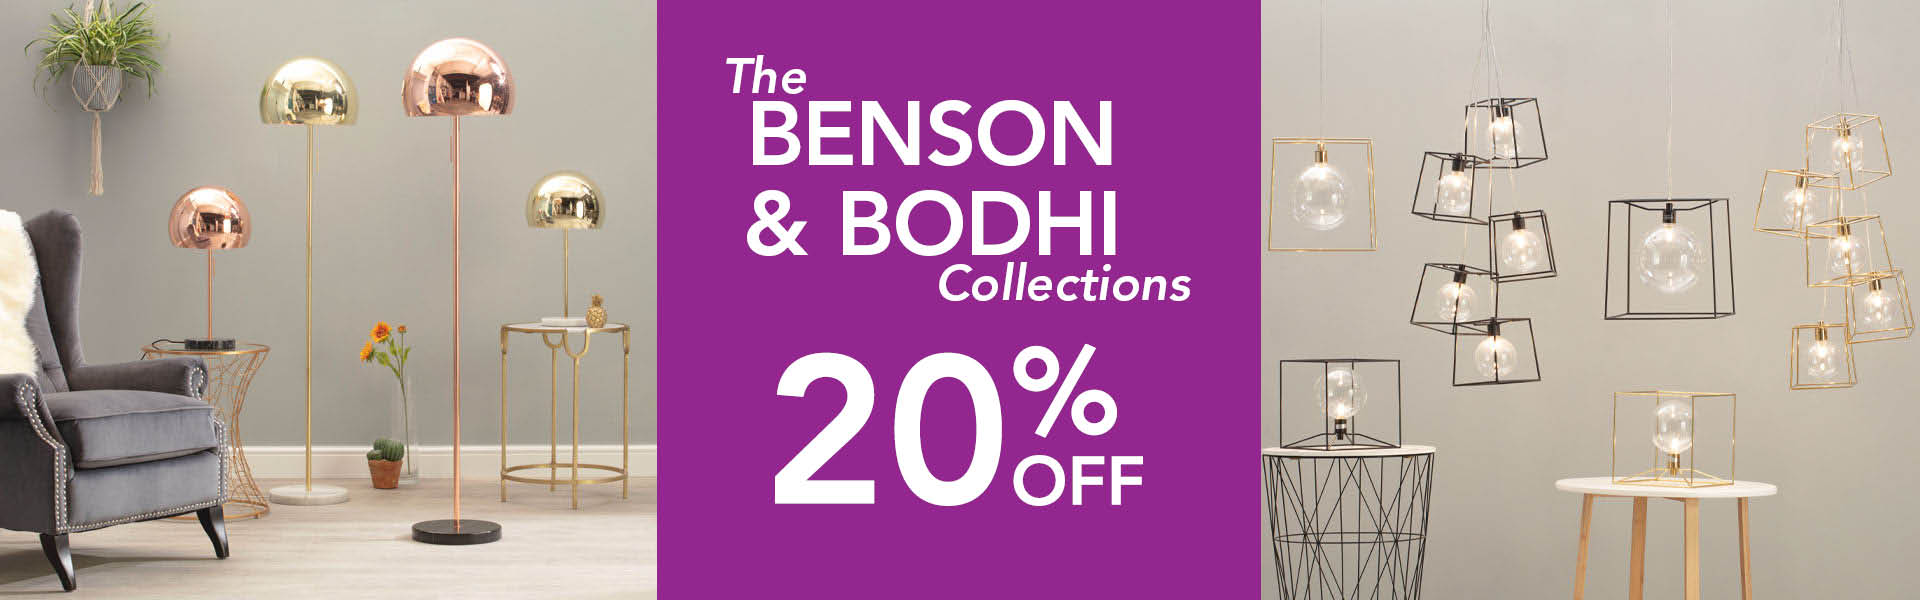 20 Percent off the Benson and Bodhi Ranges